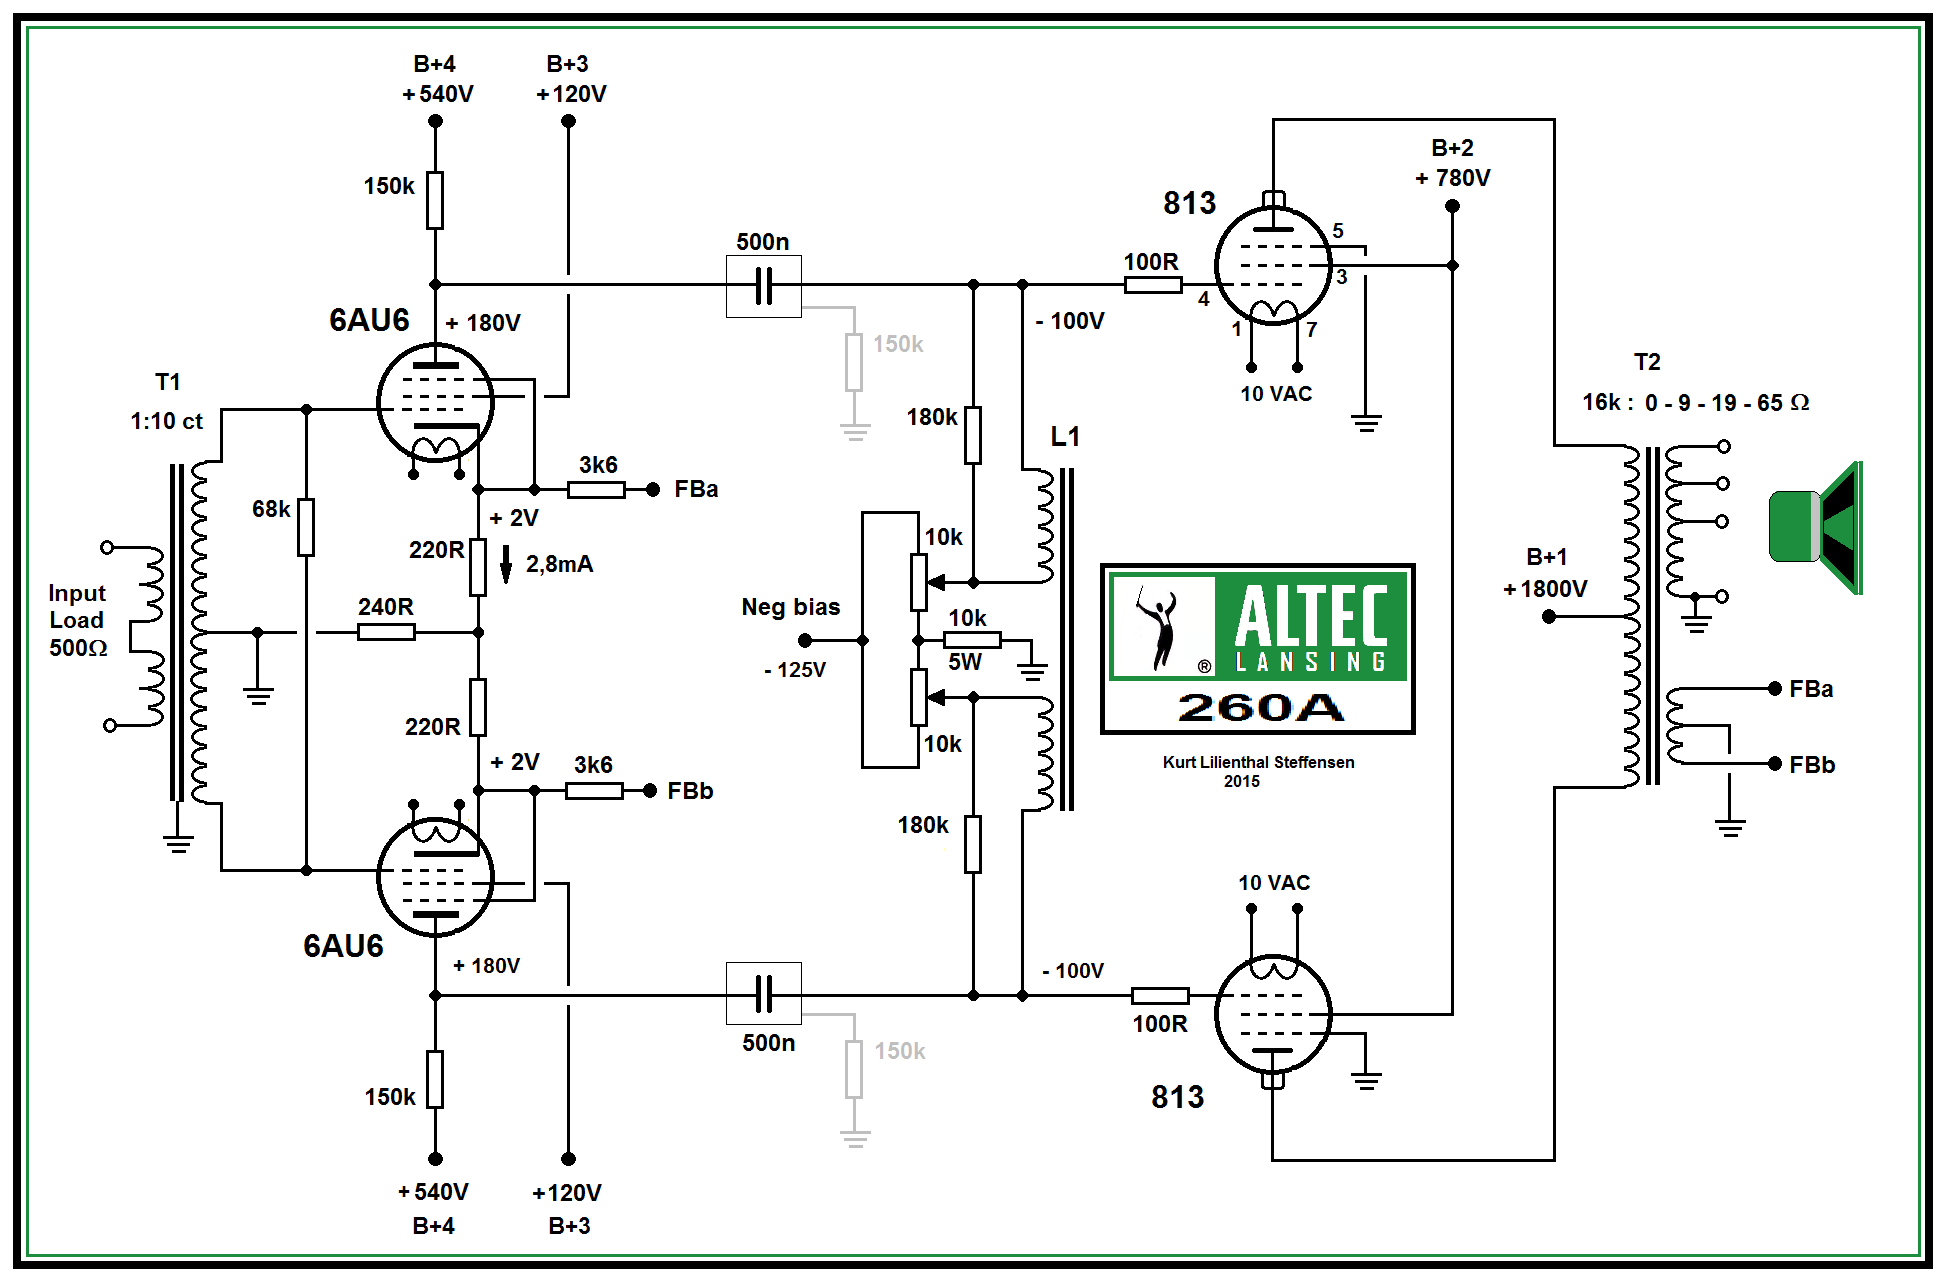 Square D 480 Volt Transformer Wiring Diagram Trusted Diagrams 3 Phase Altec Amplifier Schematics Circuit Vac